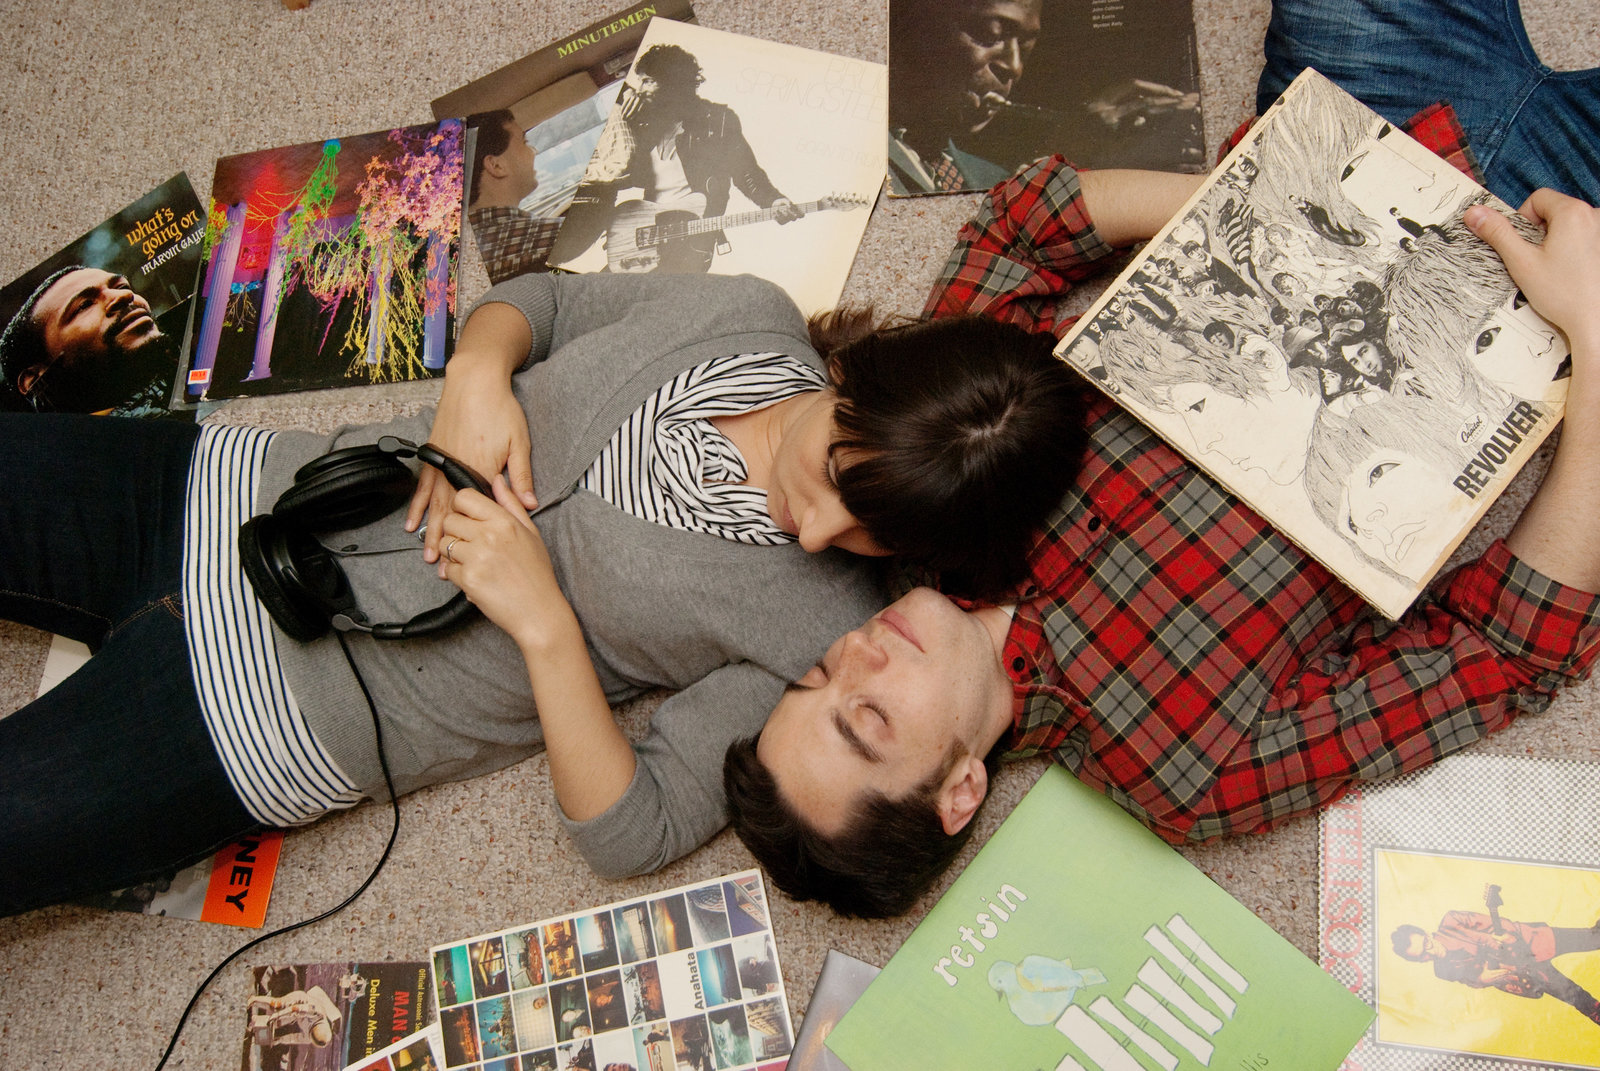 an engaged couple lay surrounded by vinyl records and headphones on their living room floor